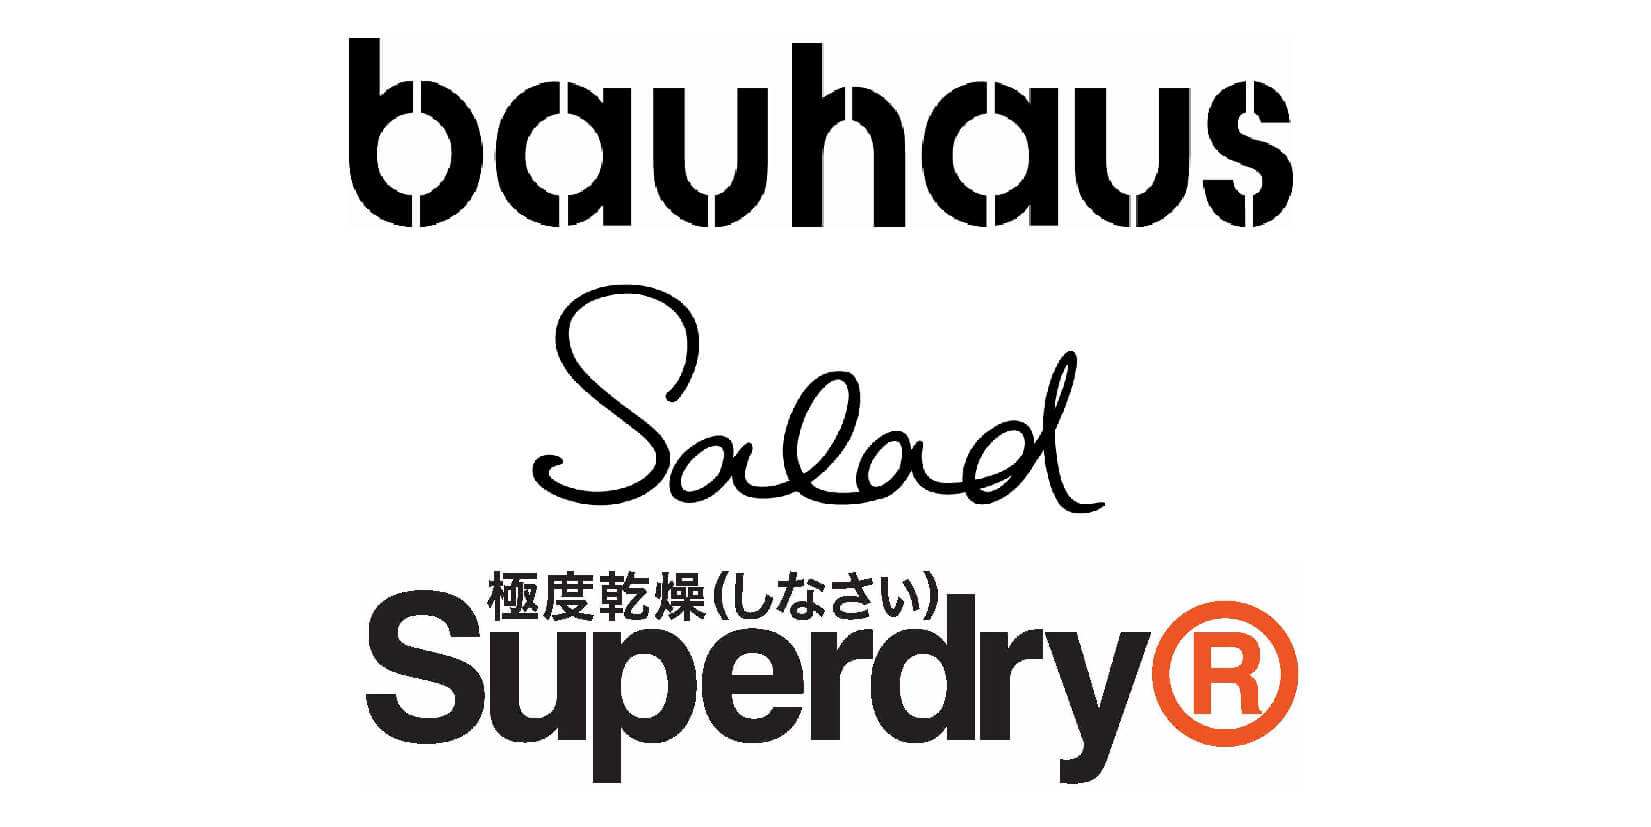 bauhaus macau jobscall.me recruitment ad 澳門招聘-01.jpg